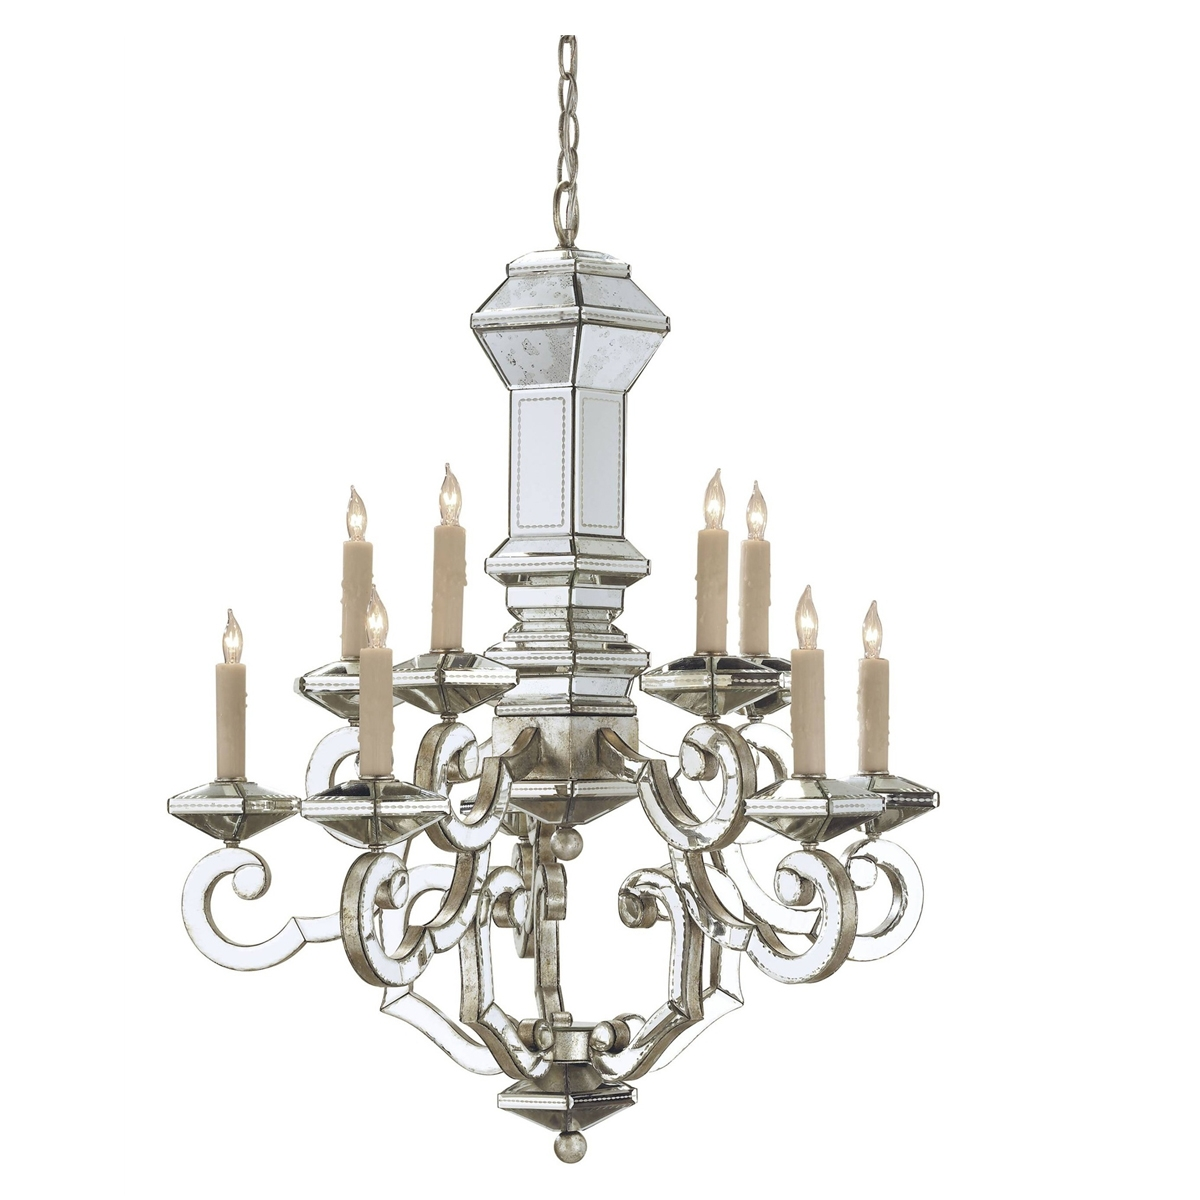 Mirrored Venetian Chandelier Belle Escape For Chandelier Mirror (Image 12 of 15)